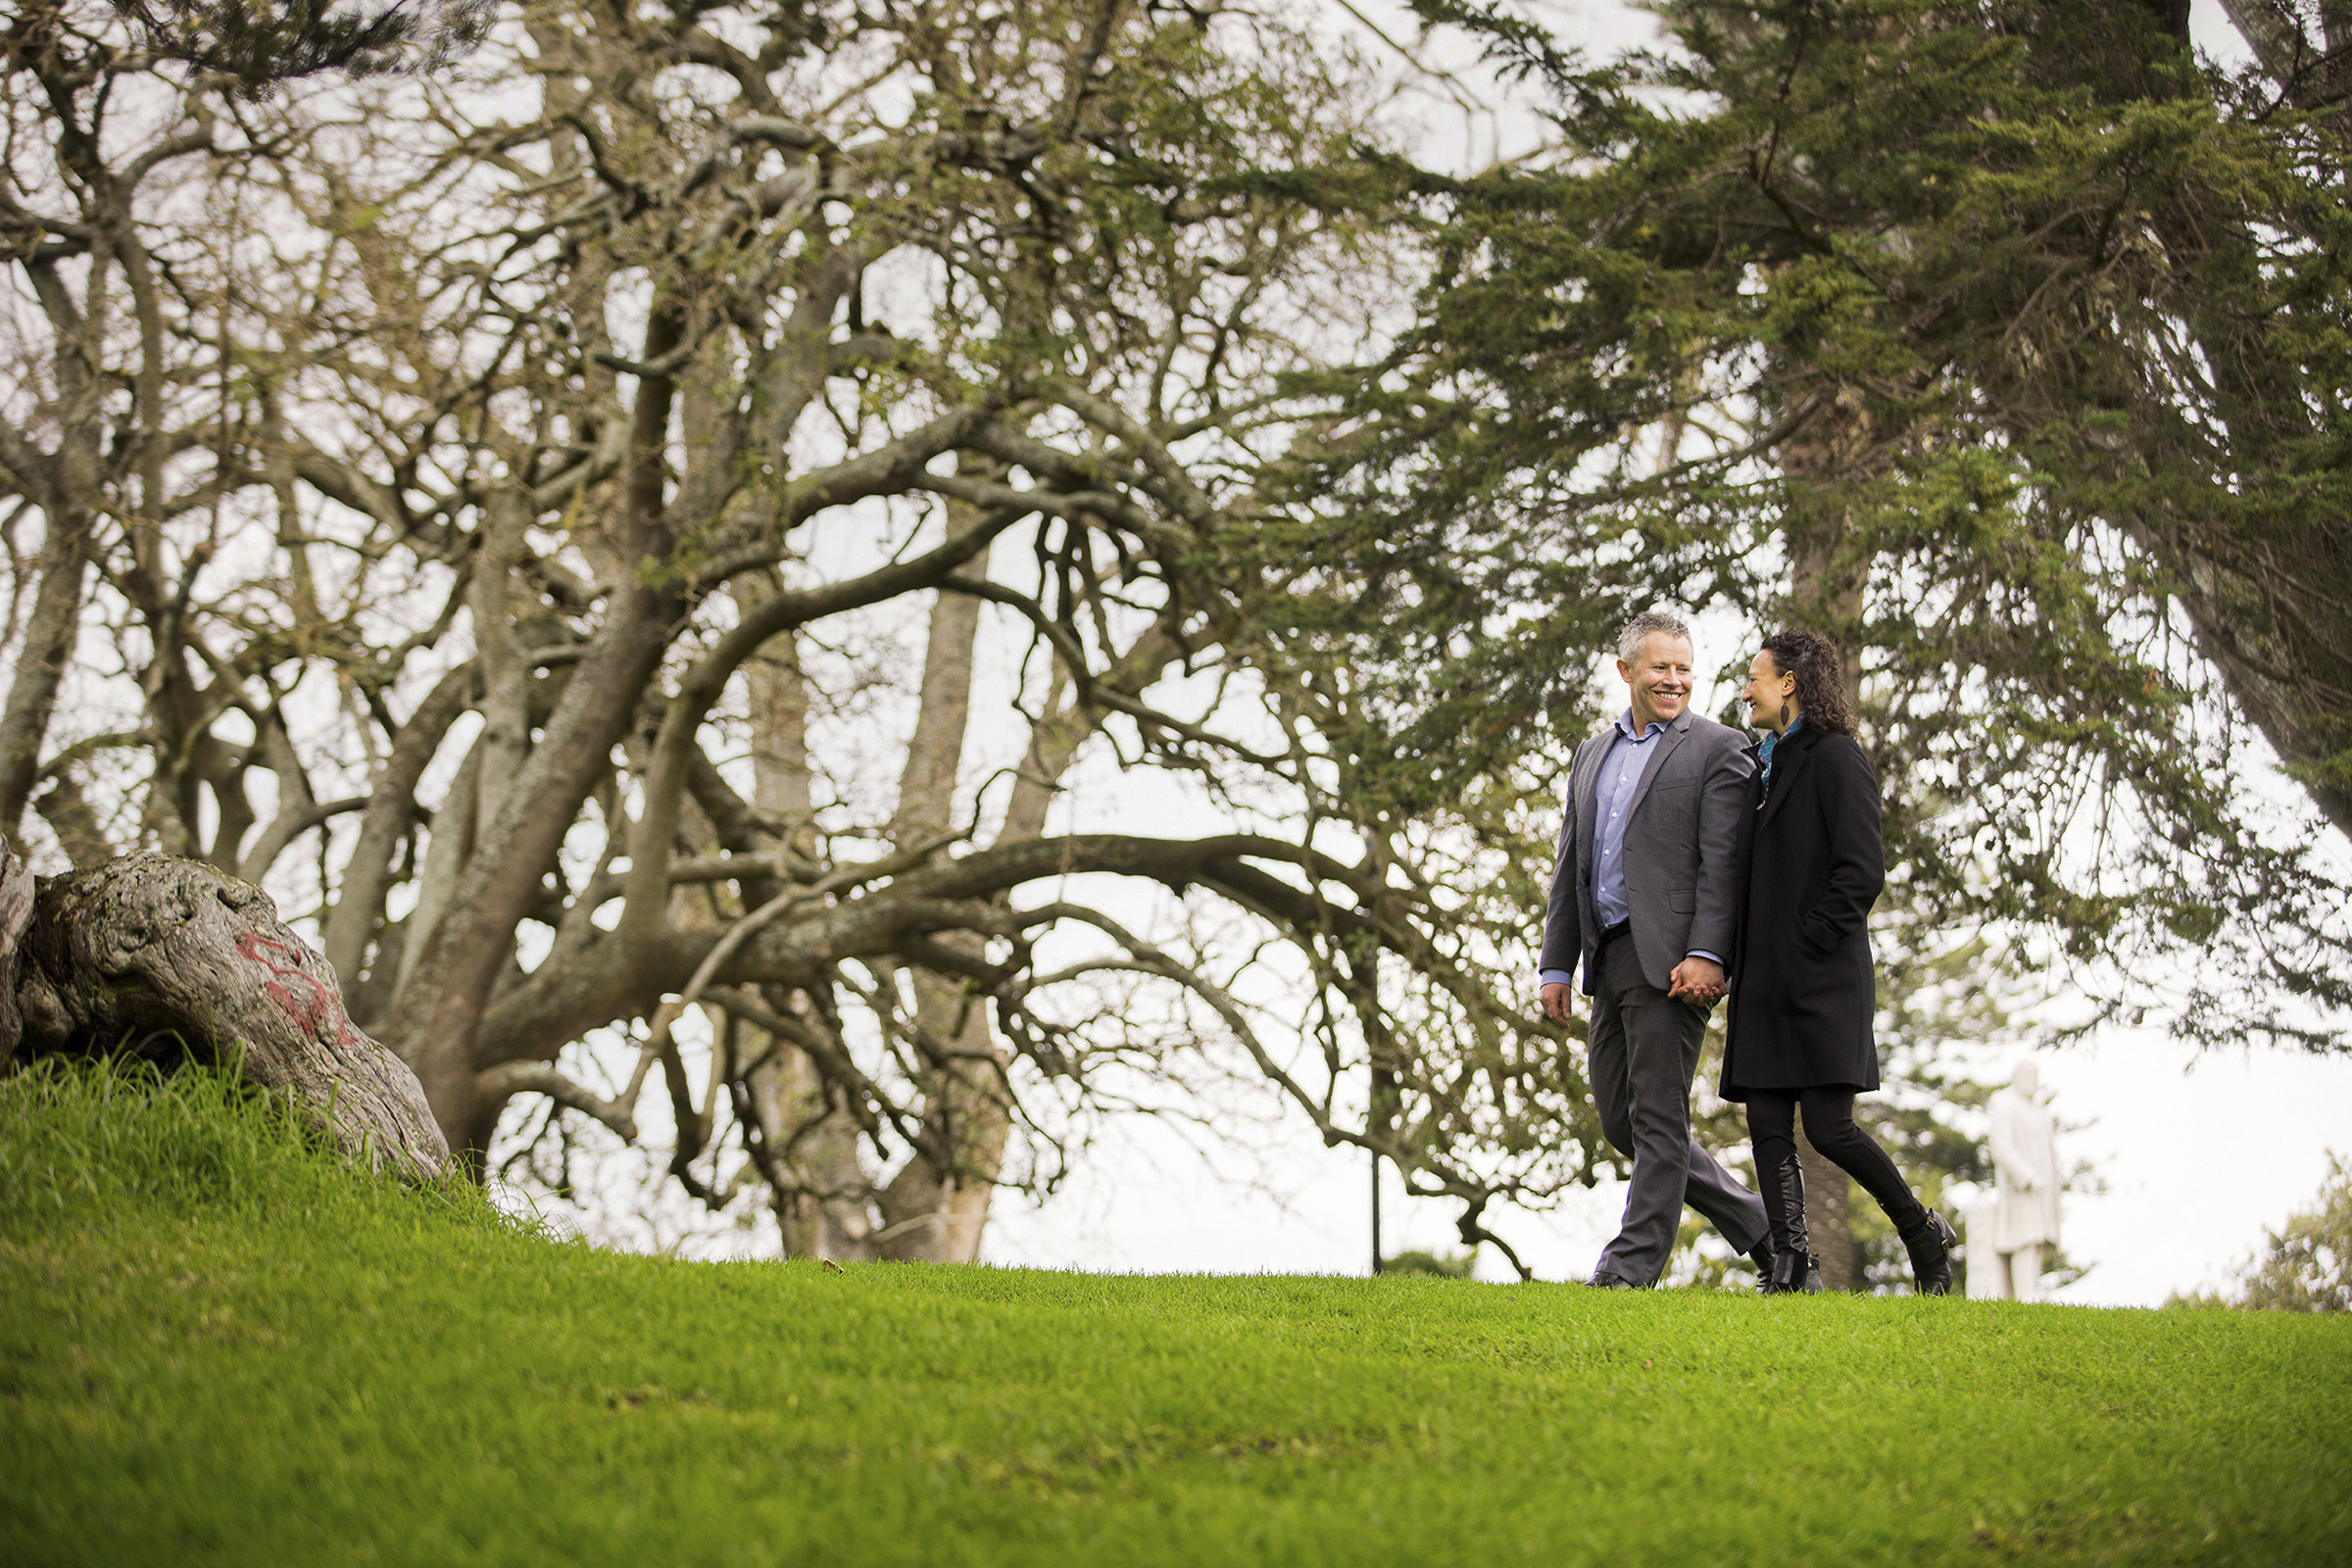 Editorial lifestyle annual report photography for NIB of a smiling man and woman holding hands walking in the park